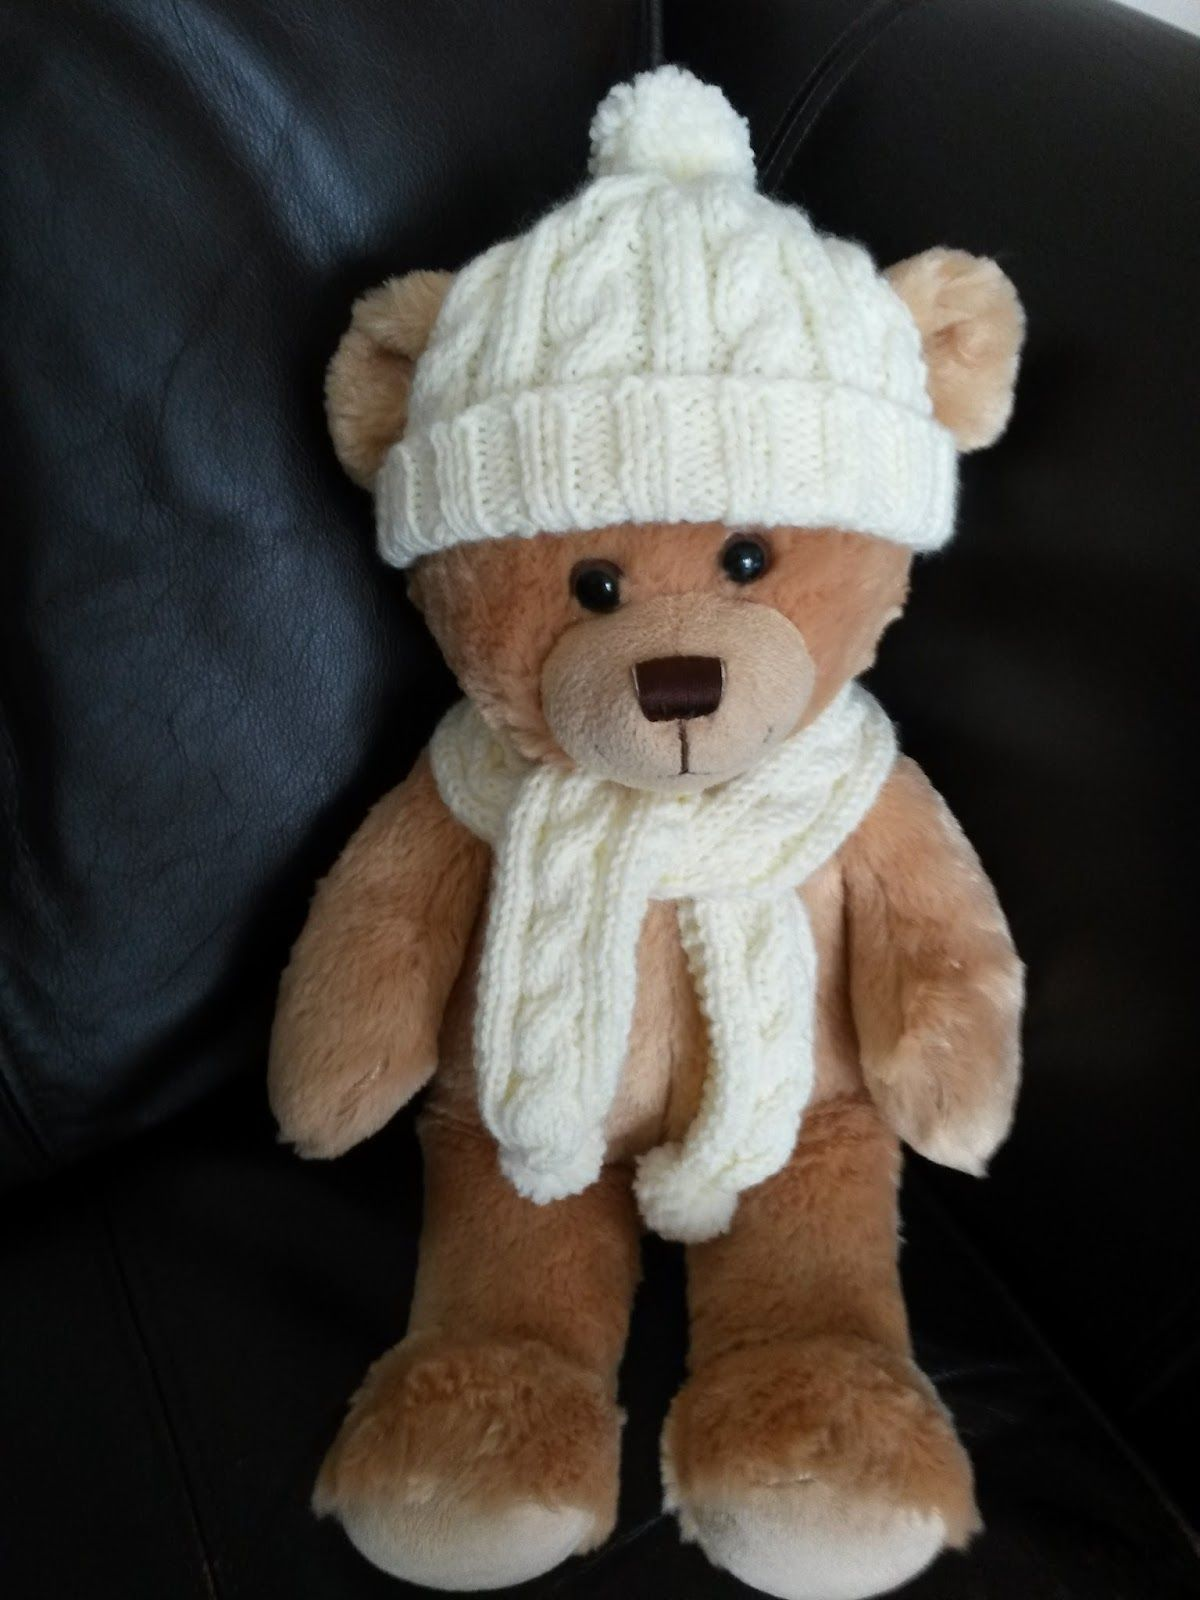 Knitting Clothes For Teddy Bears : A about making barbie knitted and crochet clothes